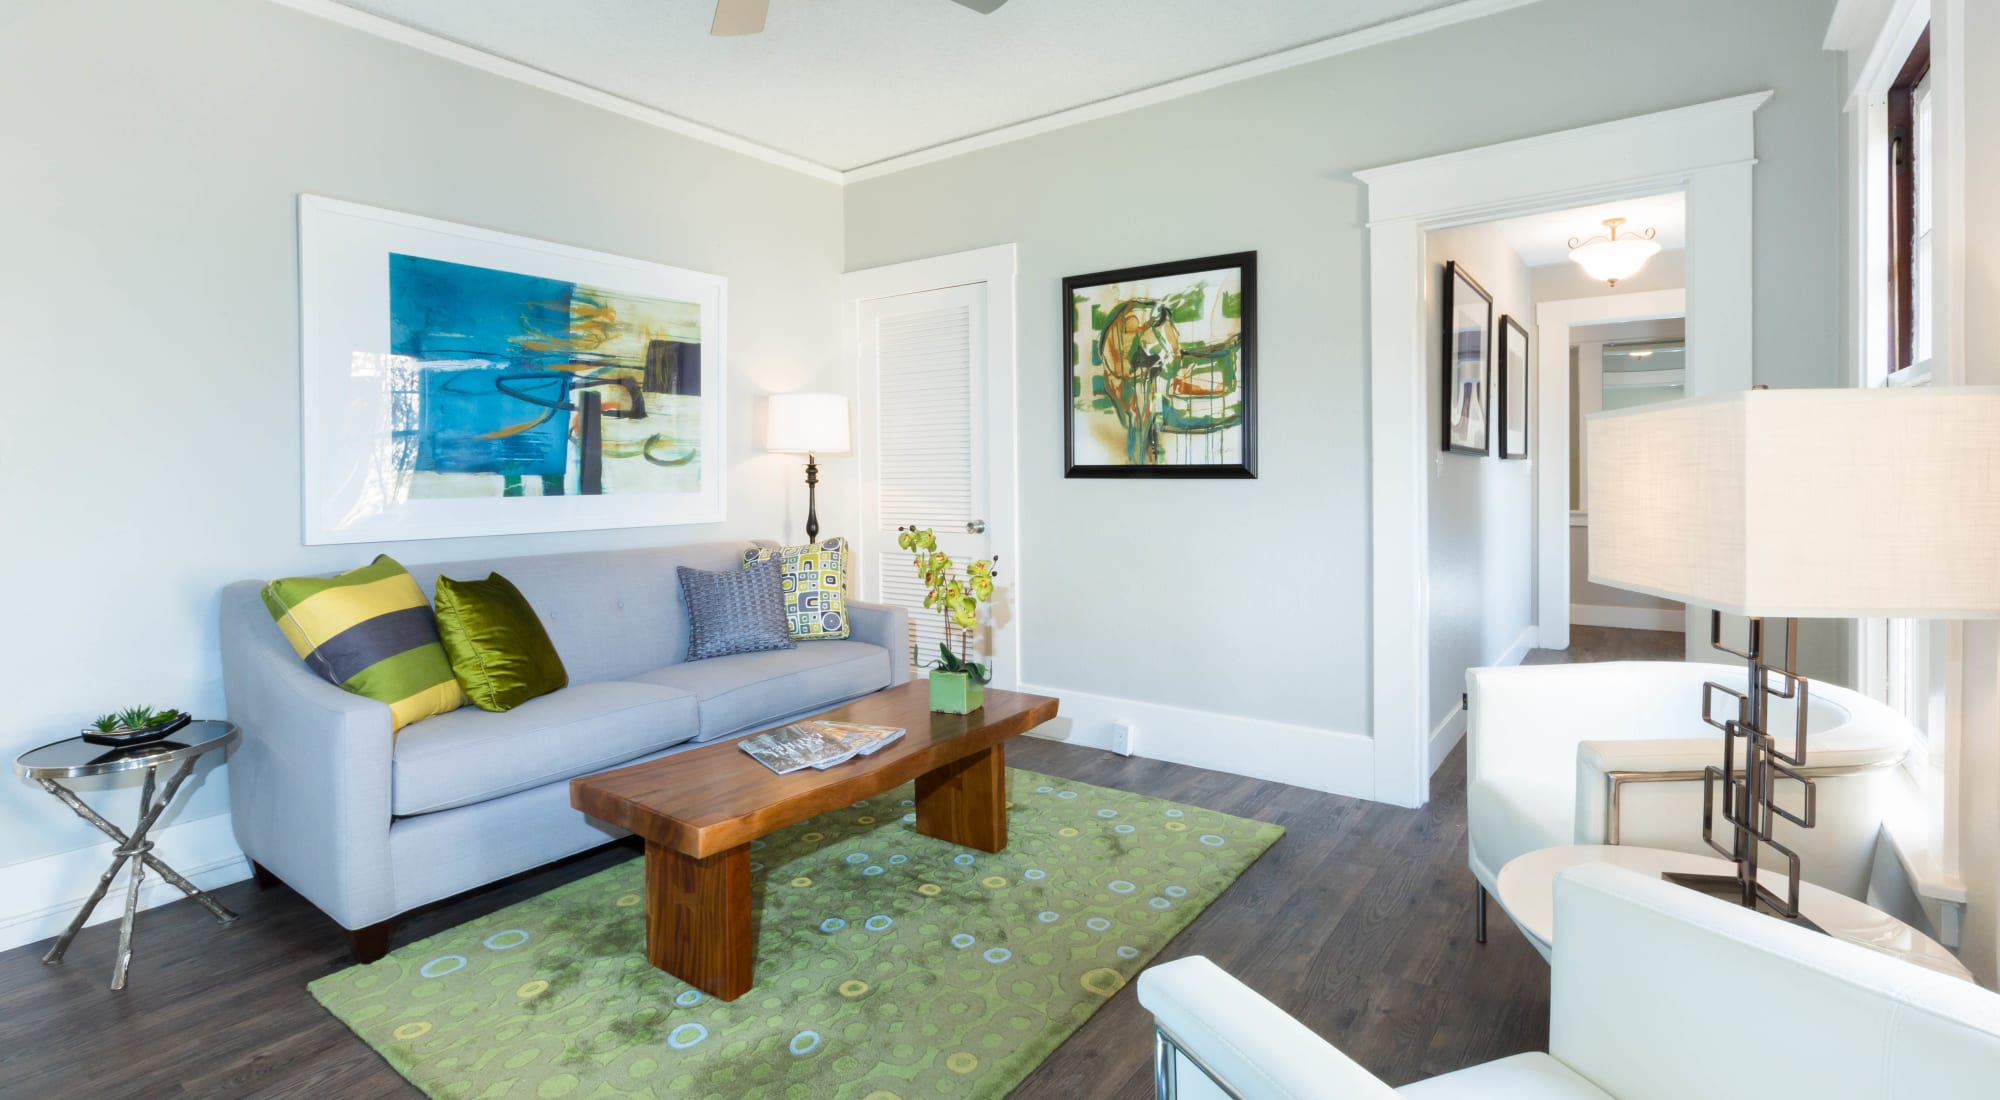 Contact us at The Landmark Apartment Homes in Sunnyvale, California